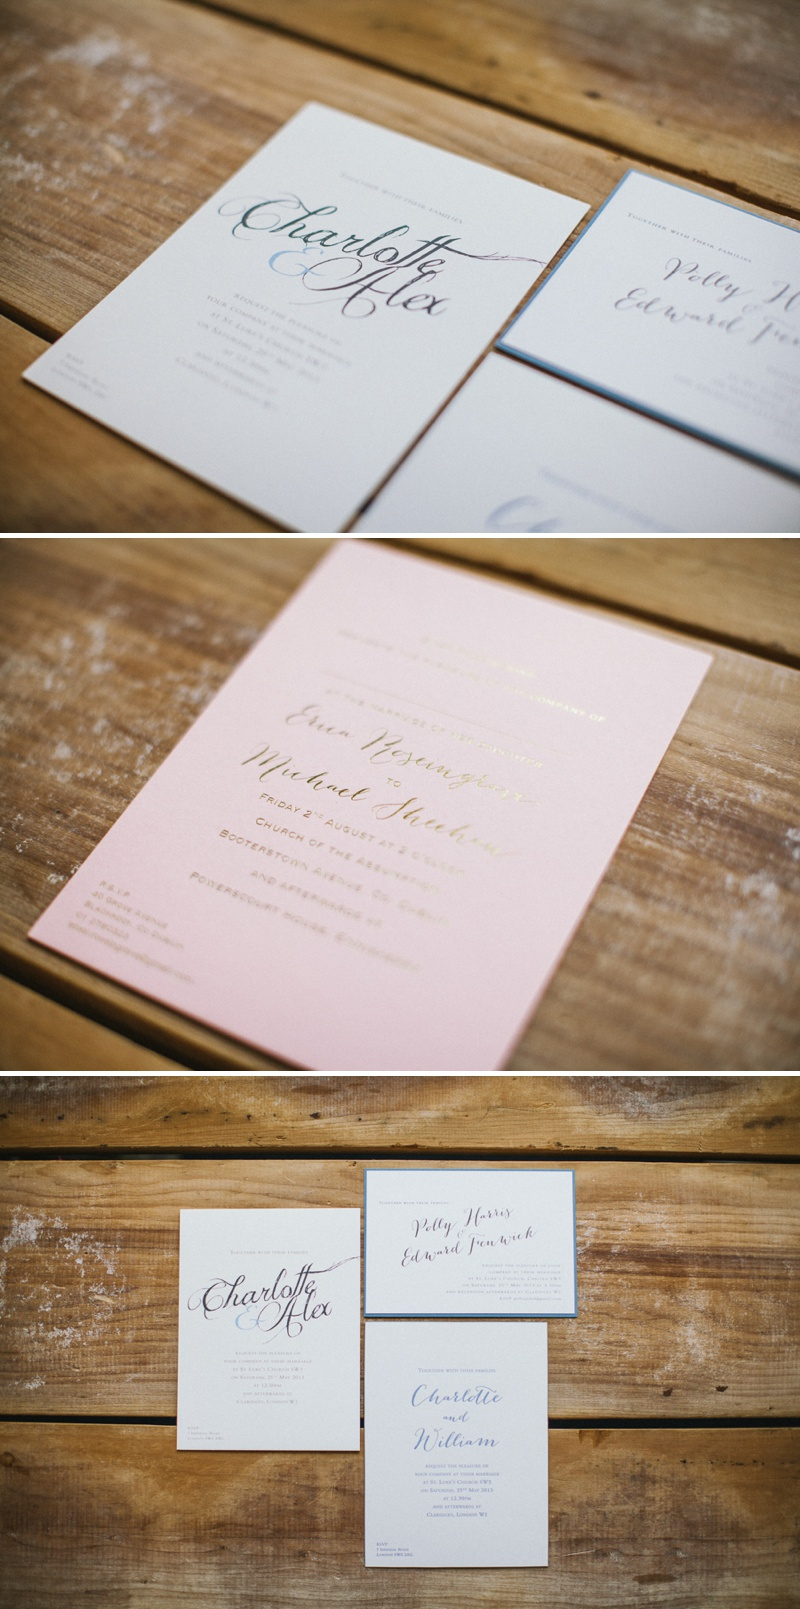 CLD Stationery Gold Foil Printed Raised Print Calligraphy Charlotte Design